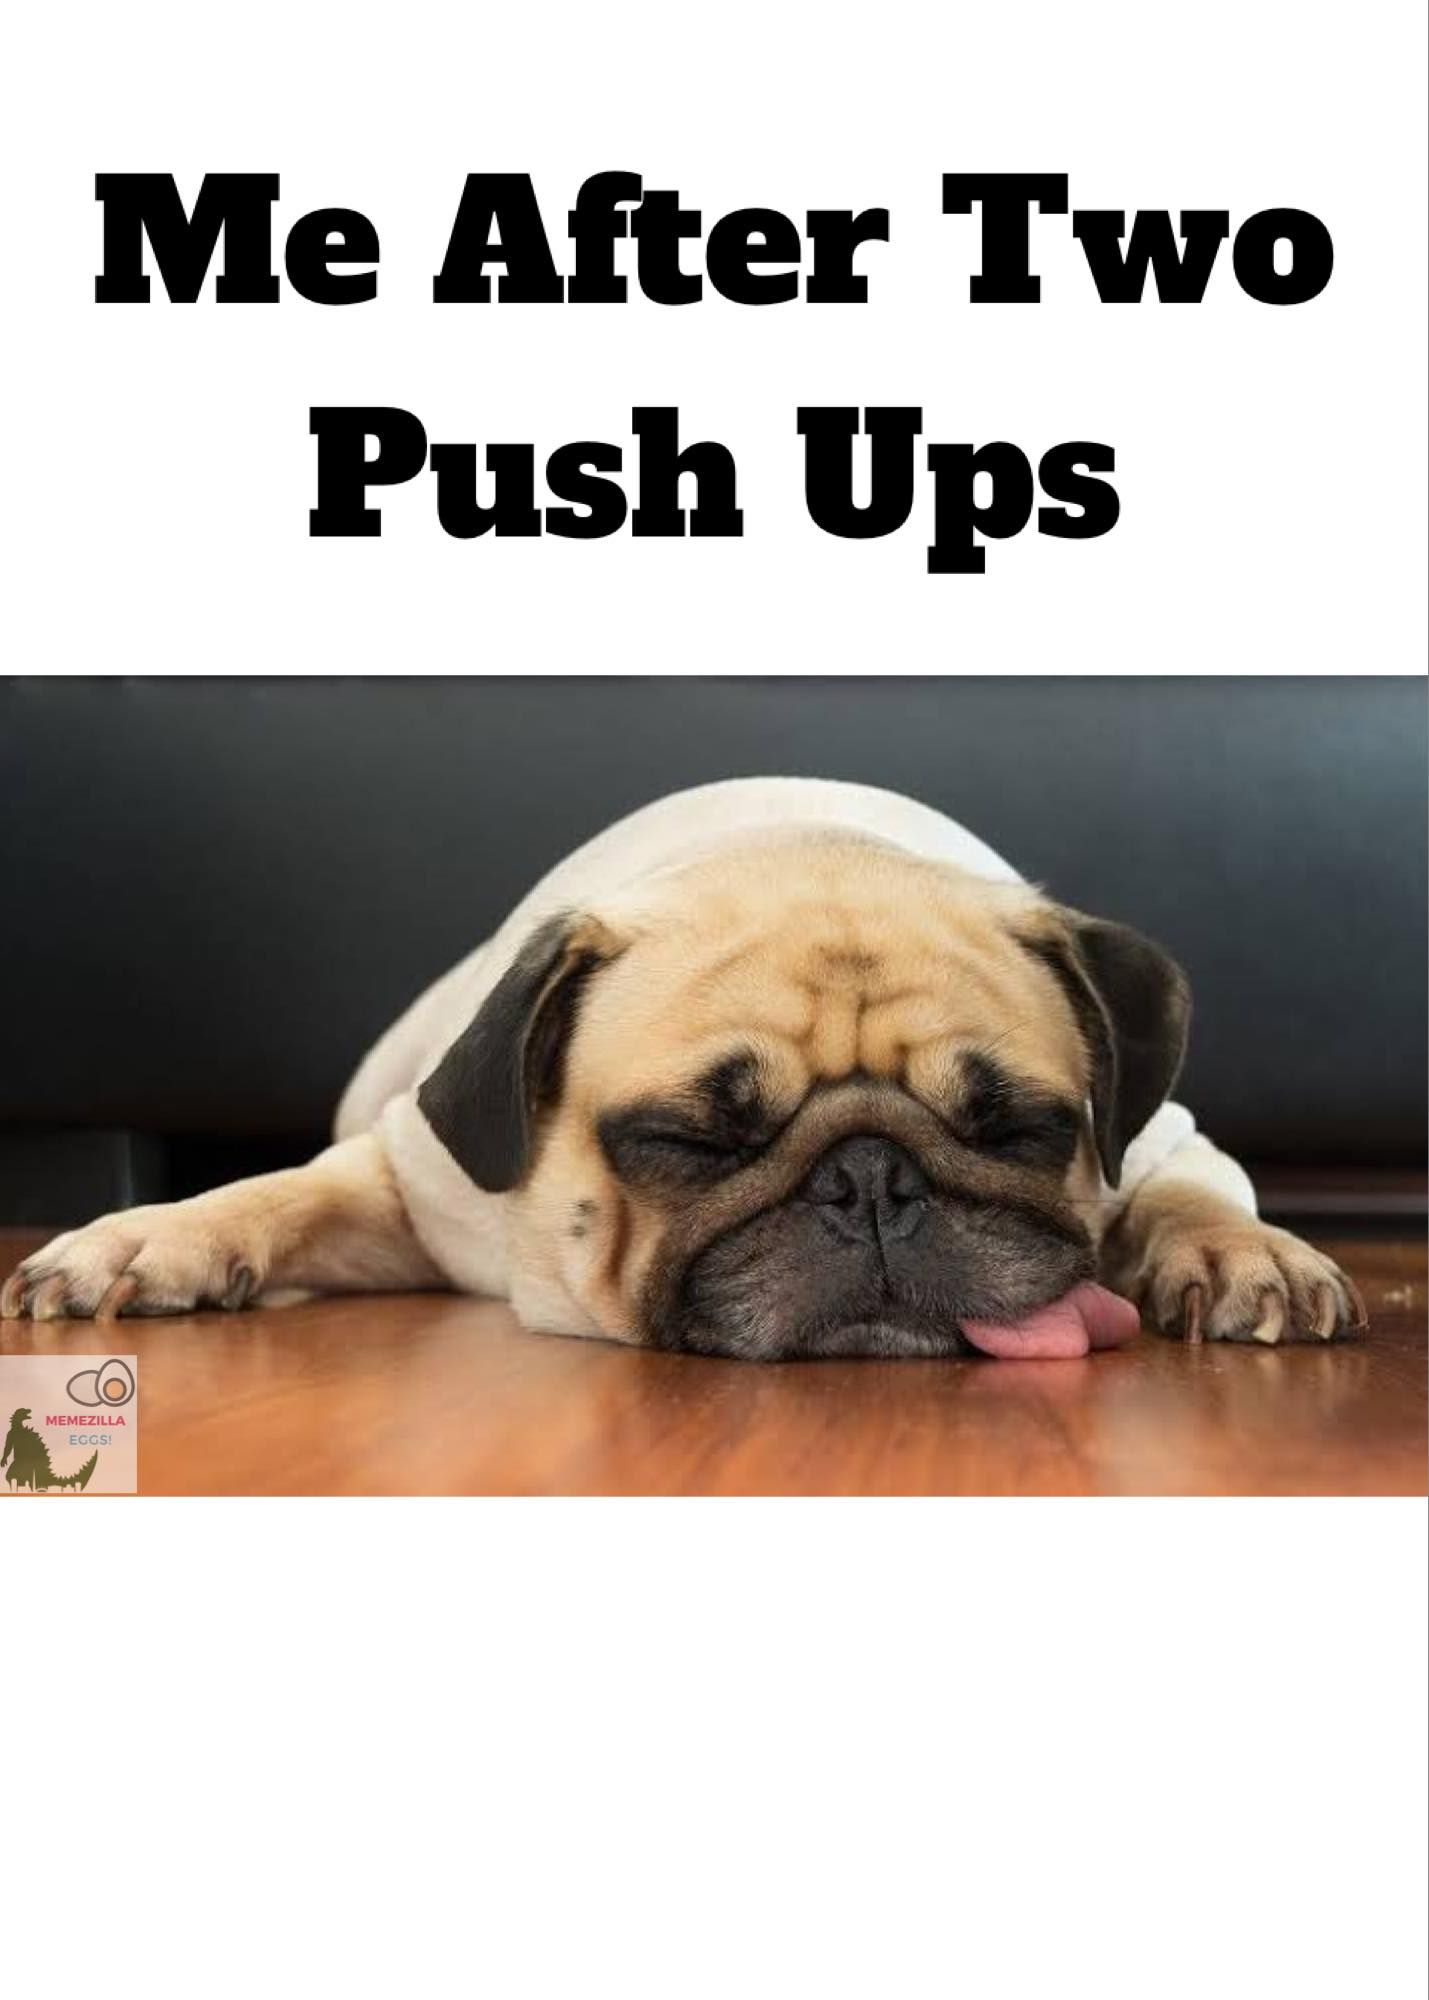 Me after Two Push Ups. Follow us for more cute images. in